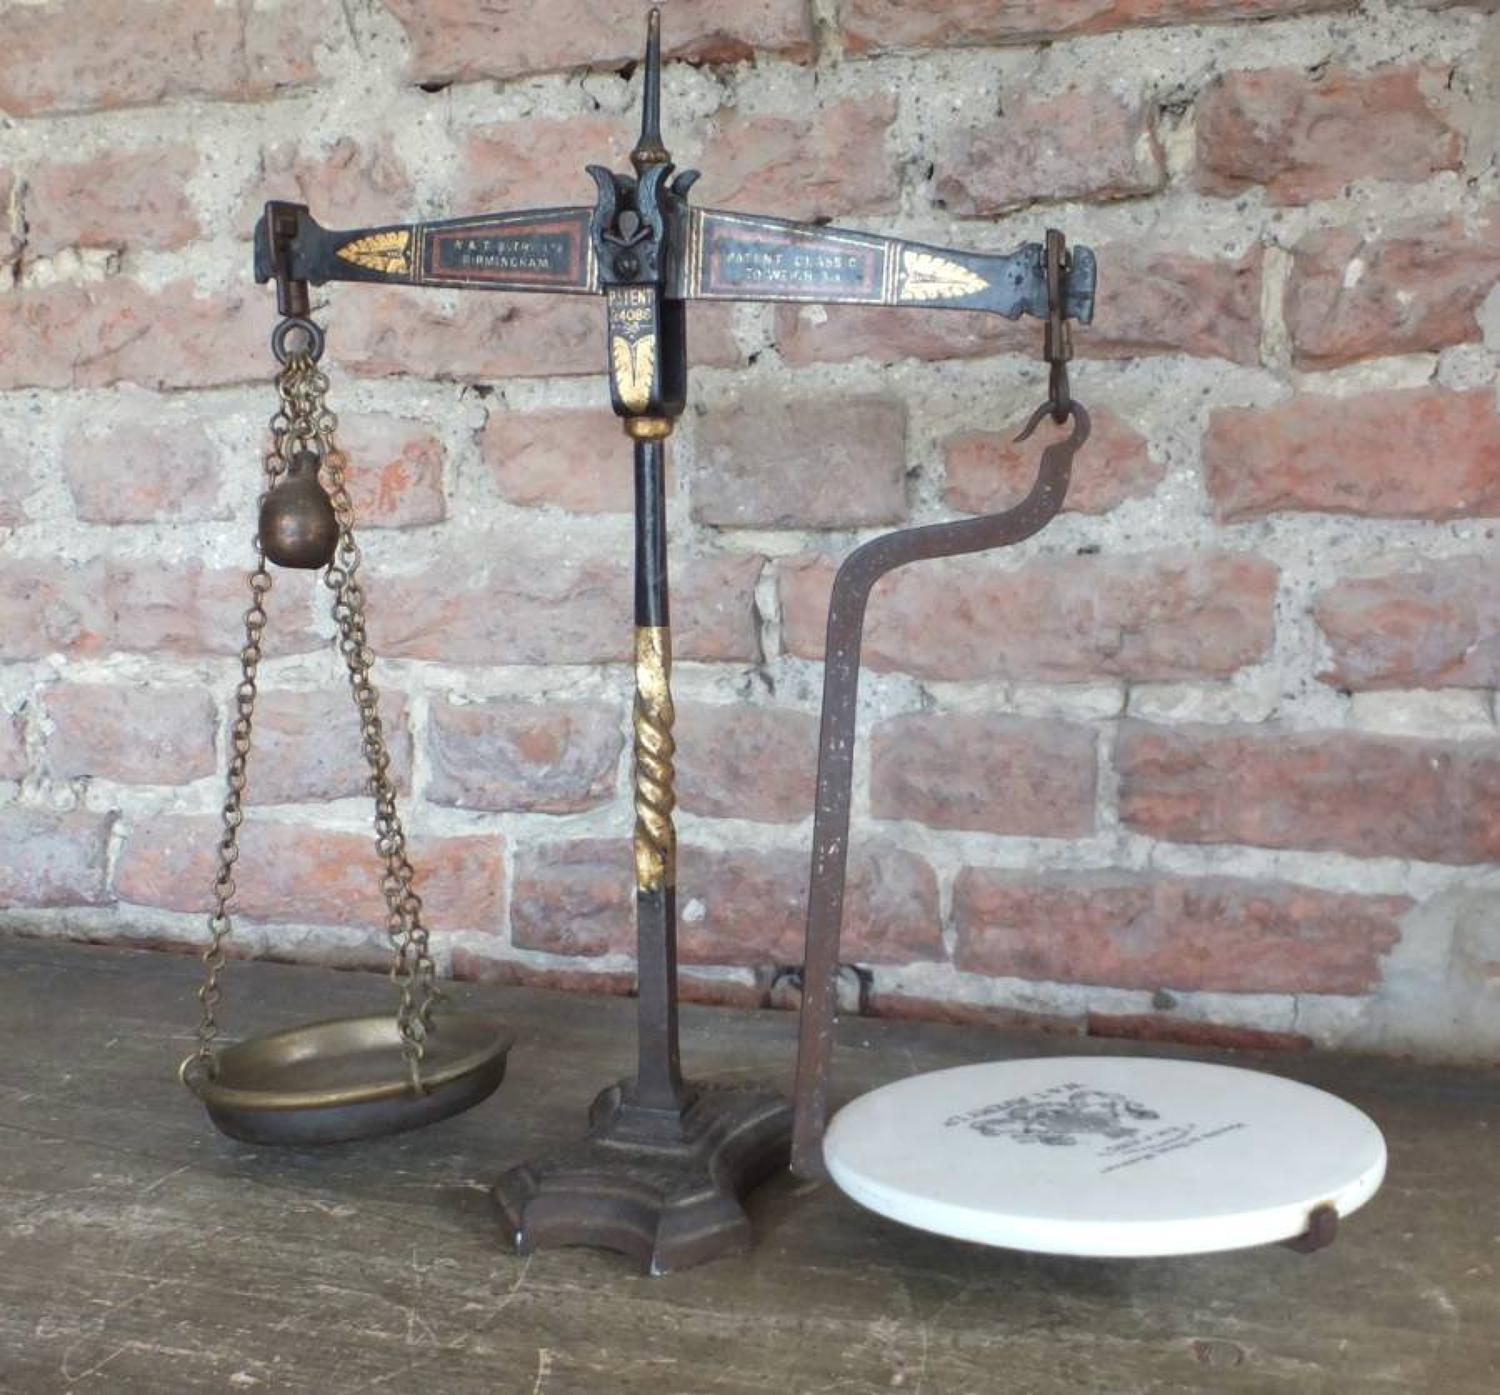 Small Edwardian Avery Grocers Butter Scales - To Weigh 3lb